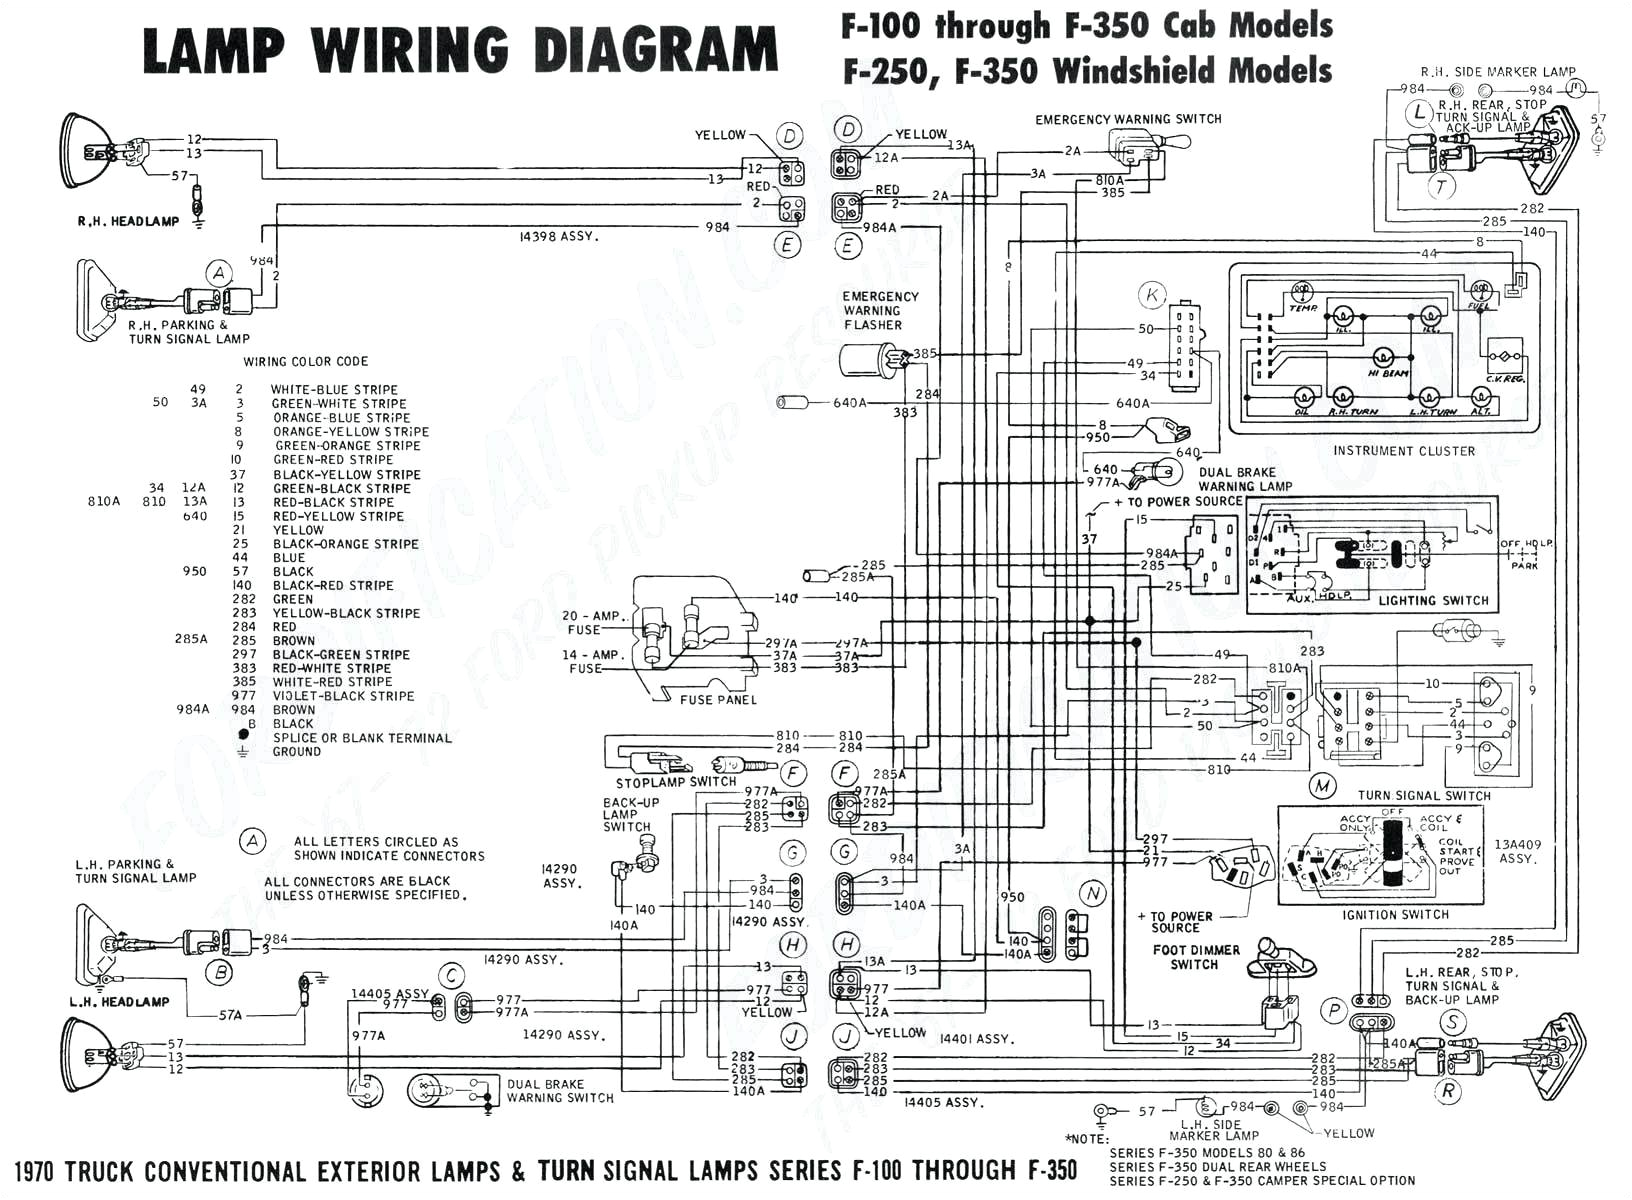 1995 ford f 250 wiring diagram wiring diagram database f150 airbag light wiring diagram